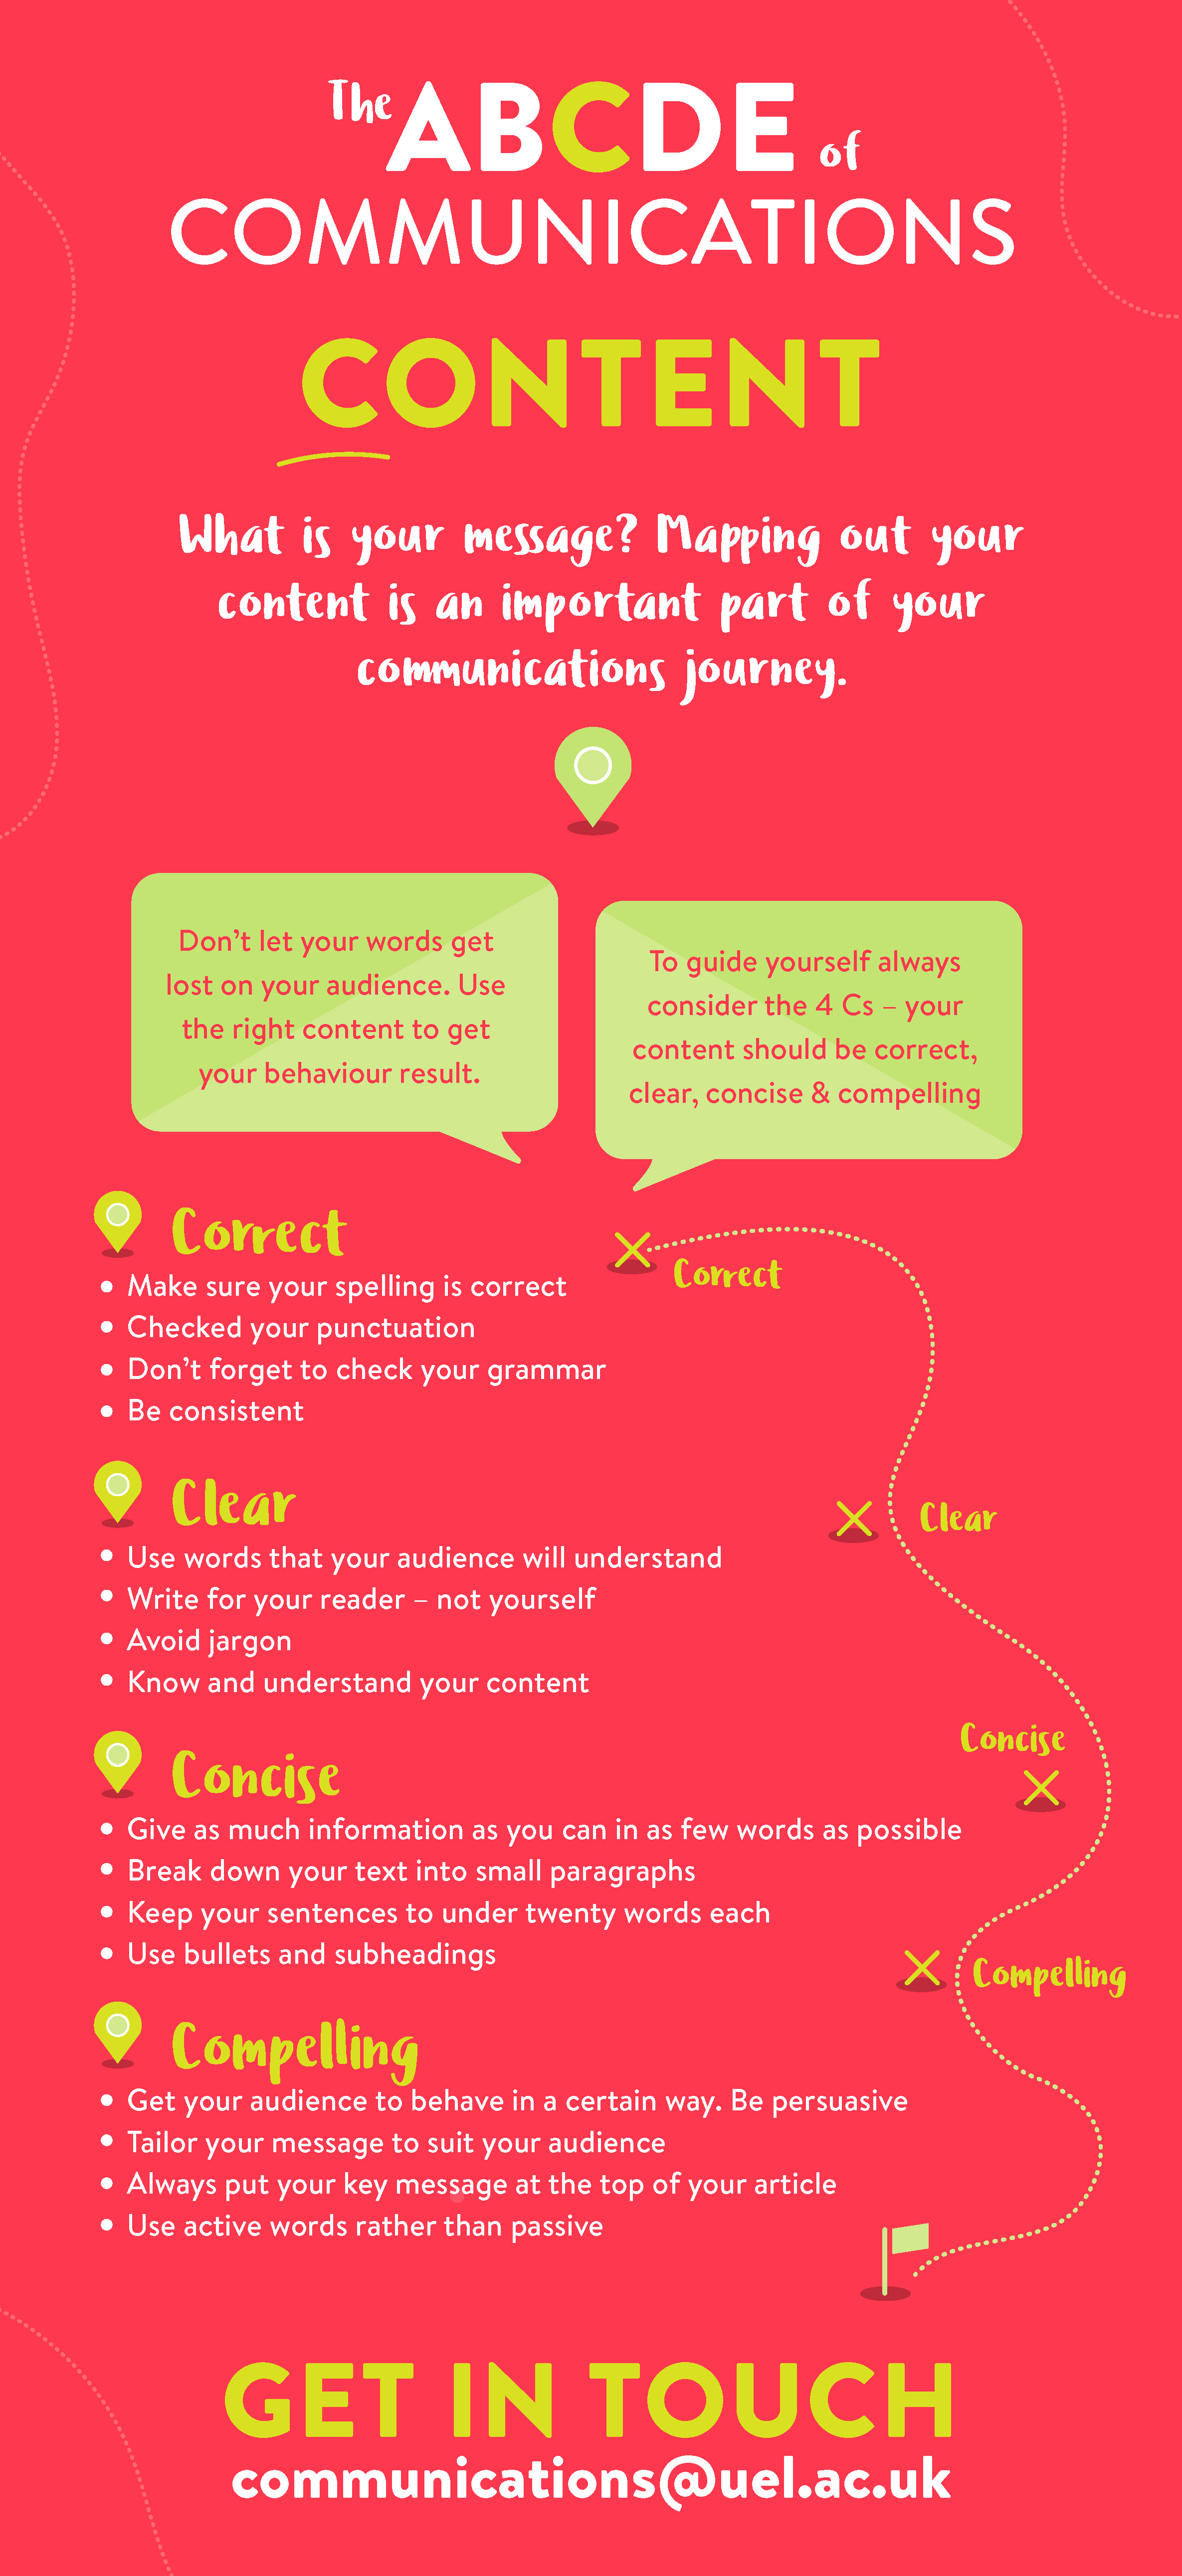 ABCDE-CommsInfographic-All_Page_4.jpg